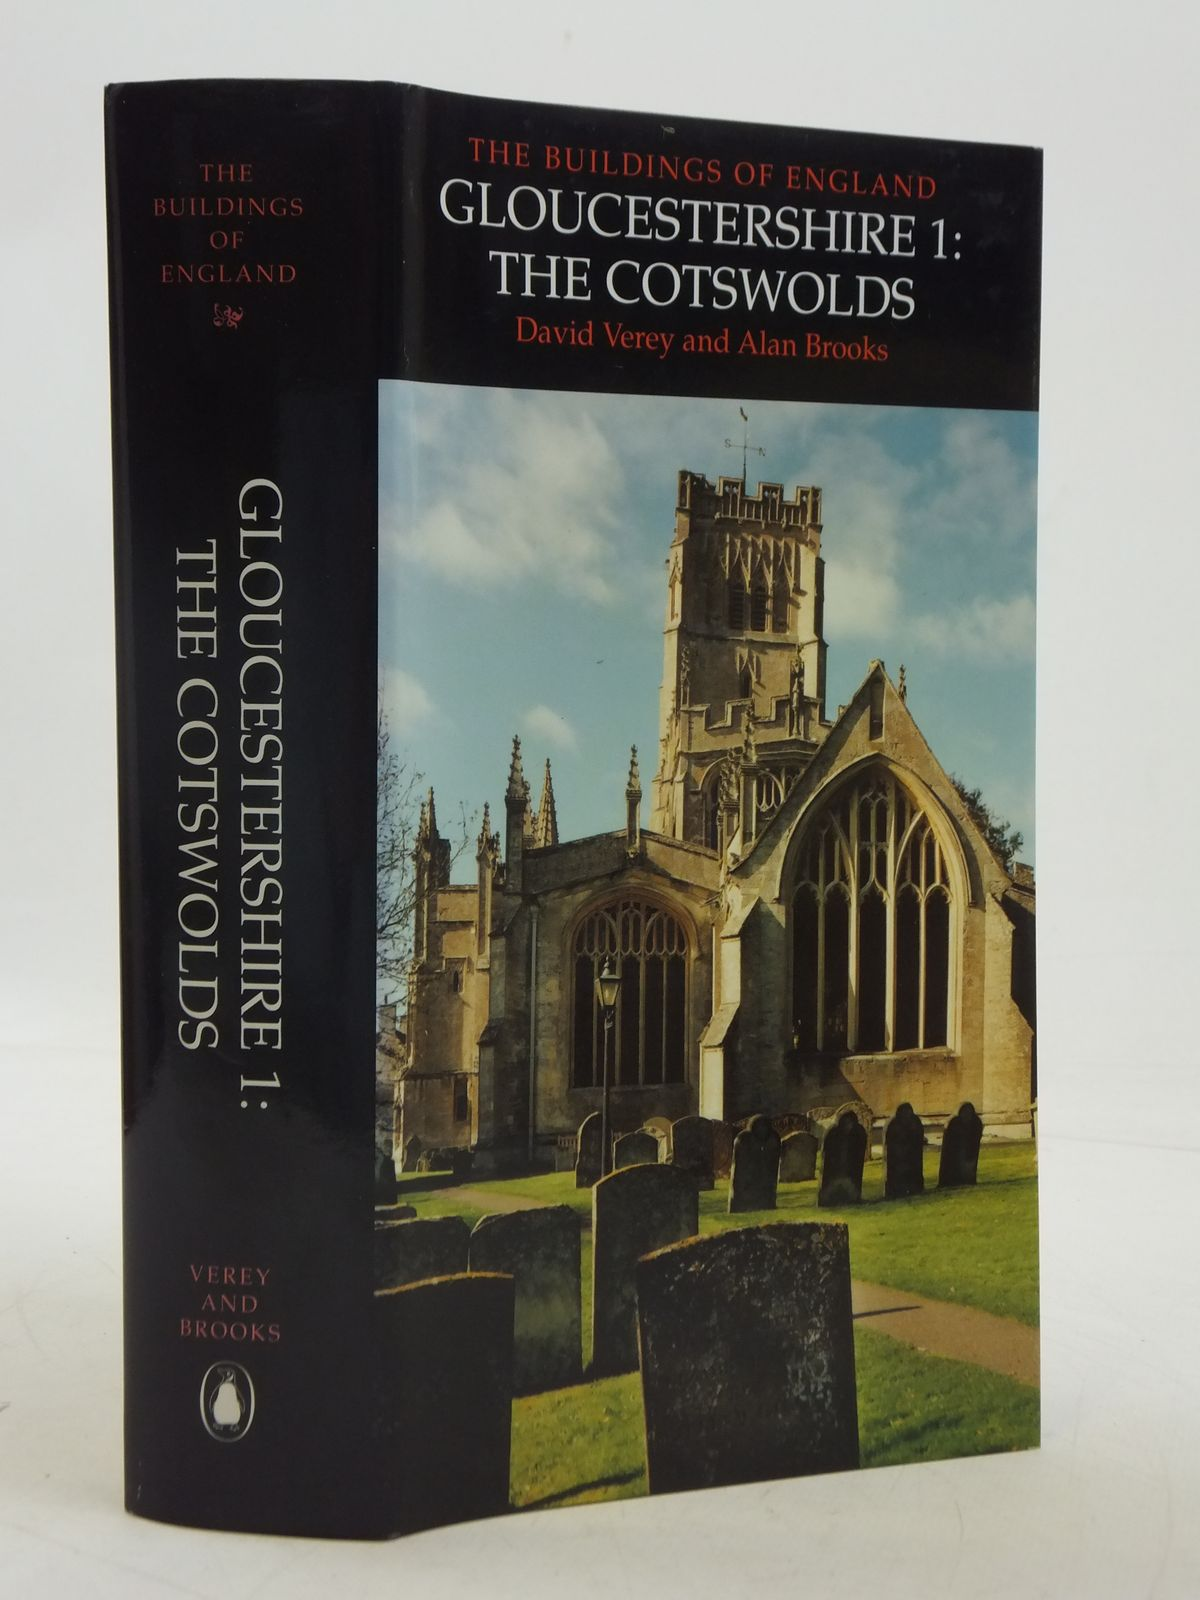 Photo of GLOUCESTERSHIRE I: THE COTSWOLDS (BUILDINGS OF ENGLAND)